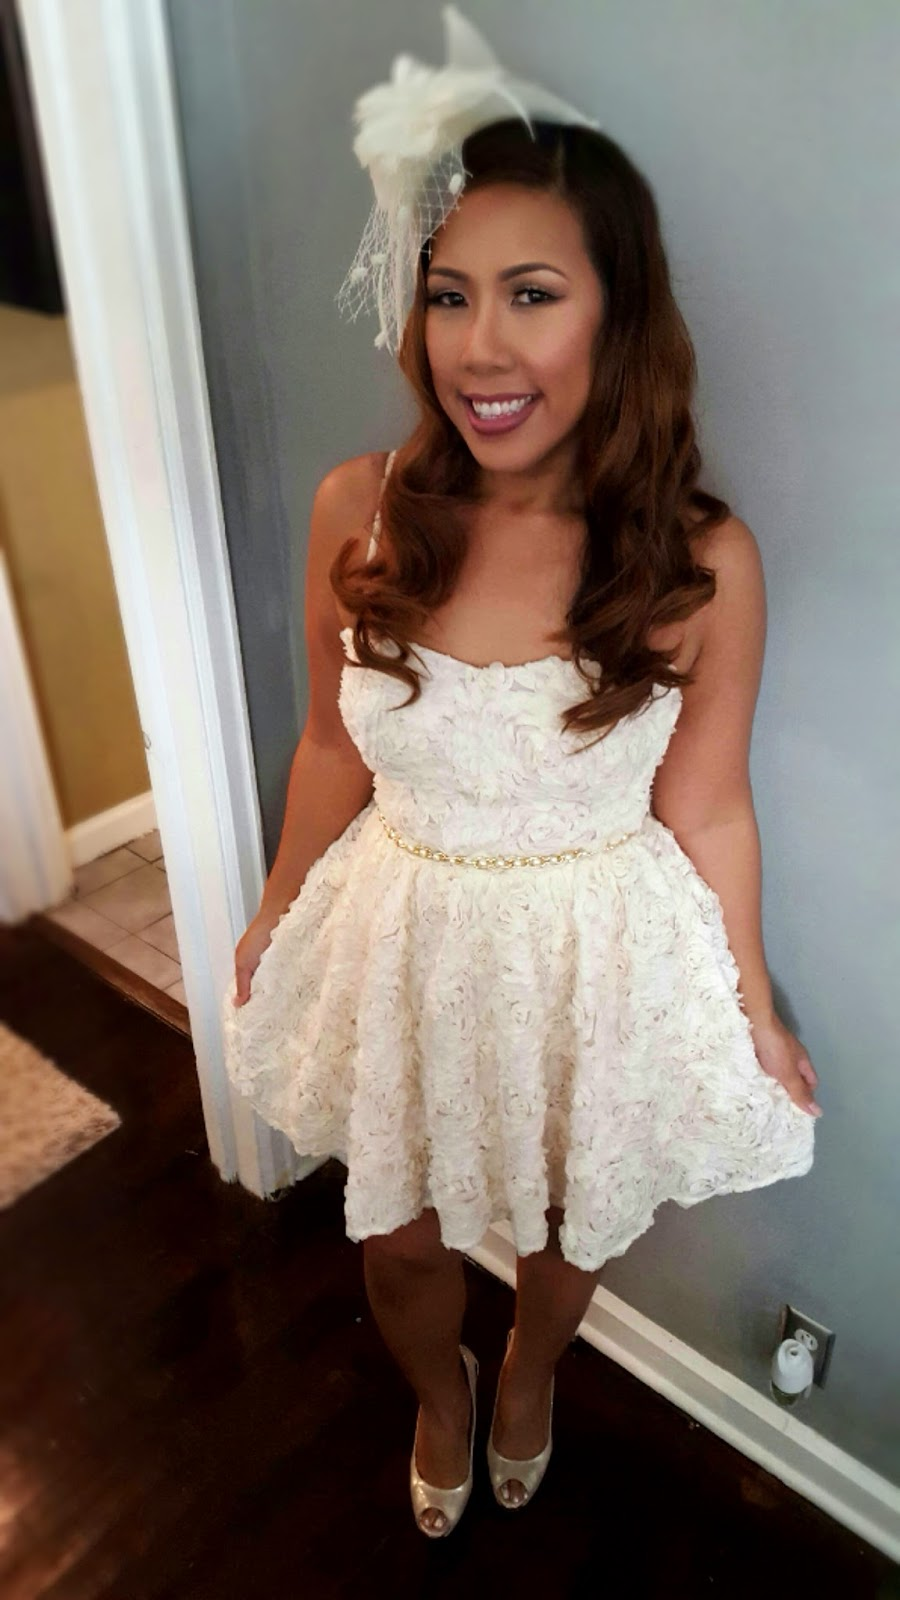 Midgets in wedding dresses fashion dresses for Wedding dress for courthouse